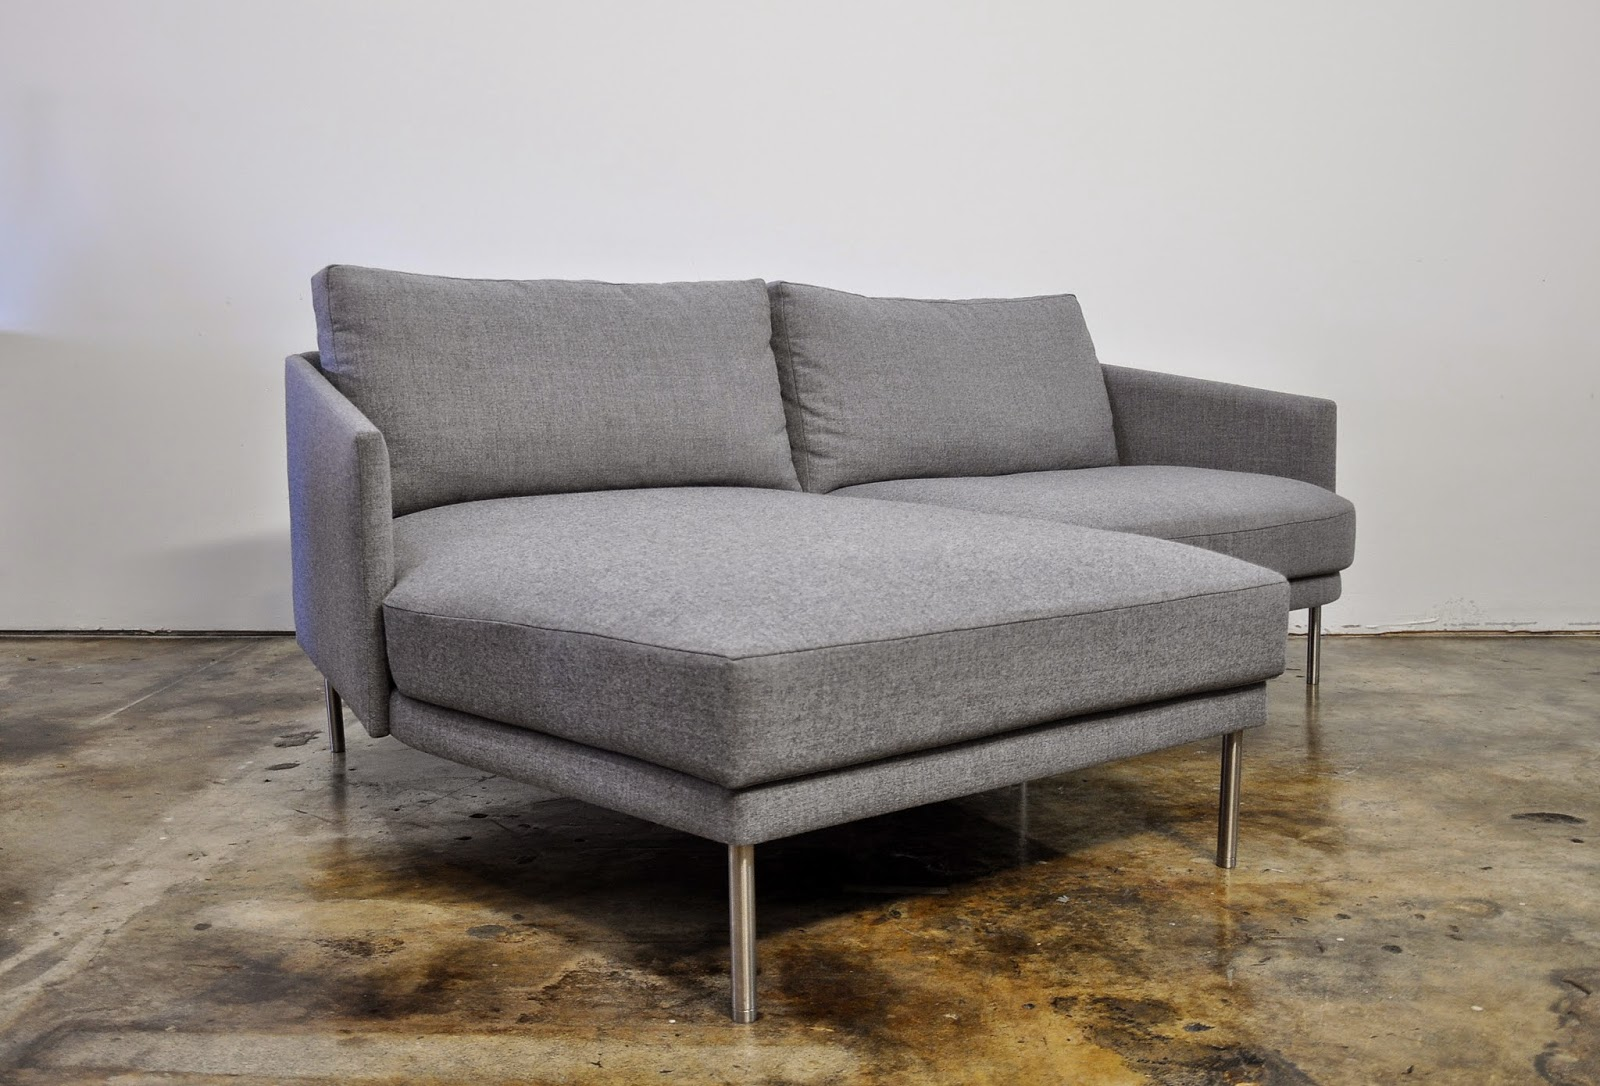 dwr theatre sofa review bed full size dimensions camber home co